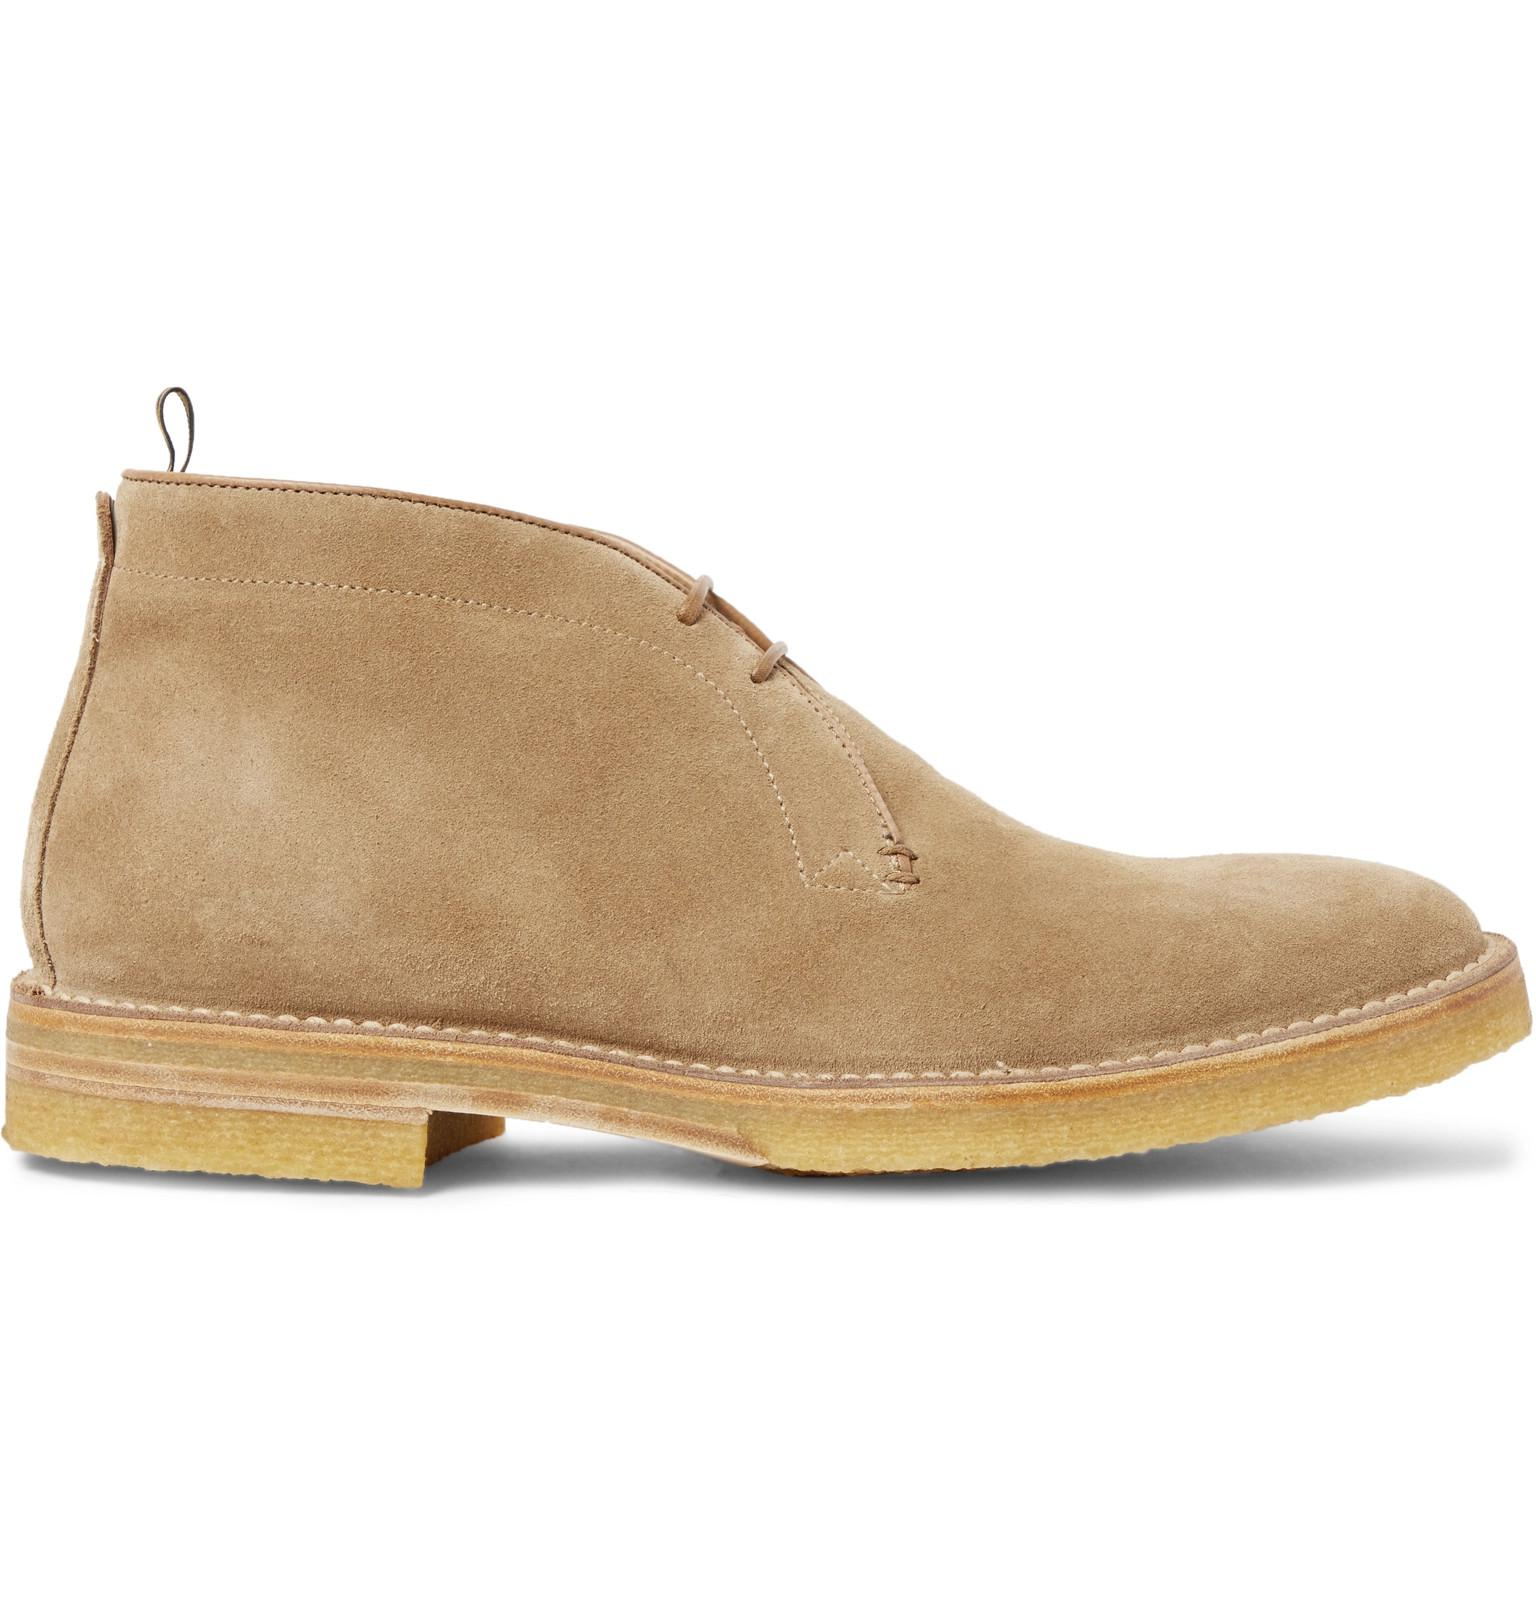 6341b6c535e7e7 Lyst - Dunhill Suede Chukka Boots in Natural for Men